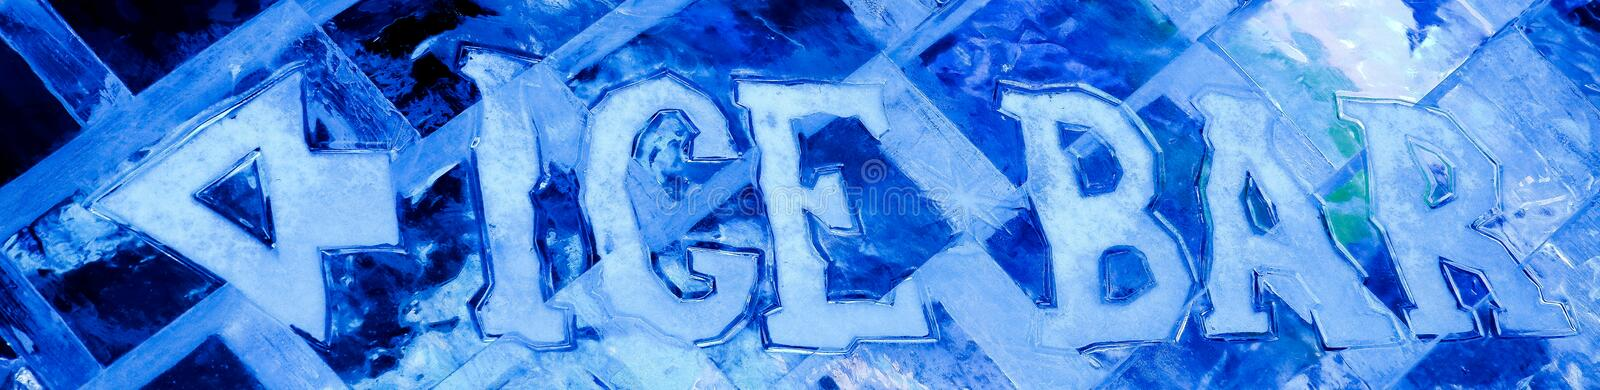 Blue ice sculpture with text ice bar and arrow. On ice wall stock photos